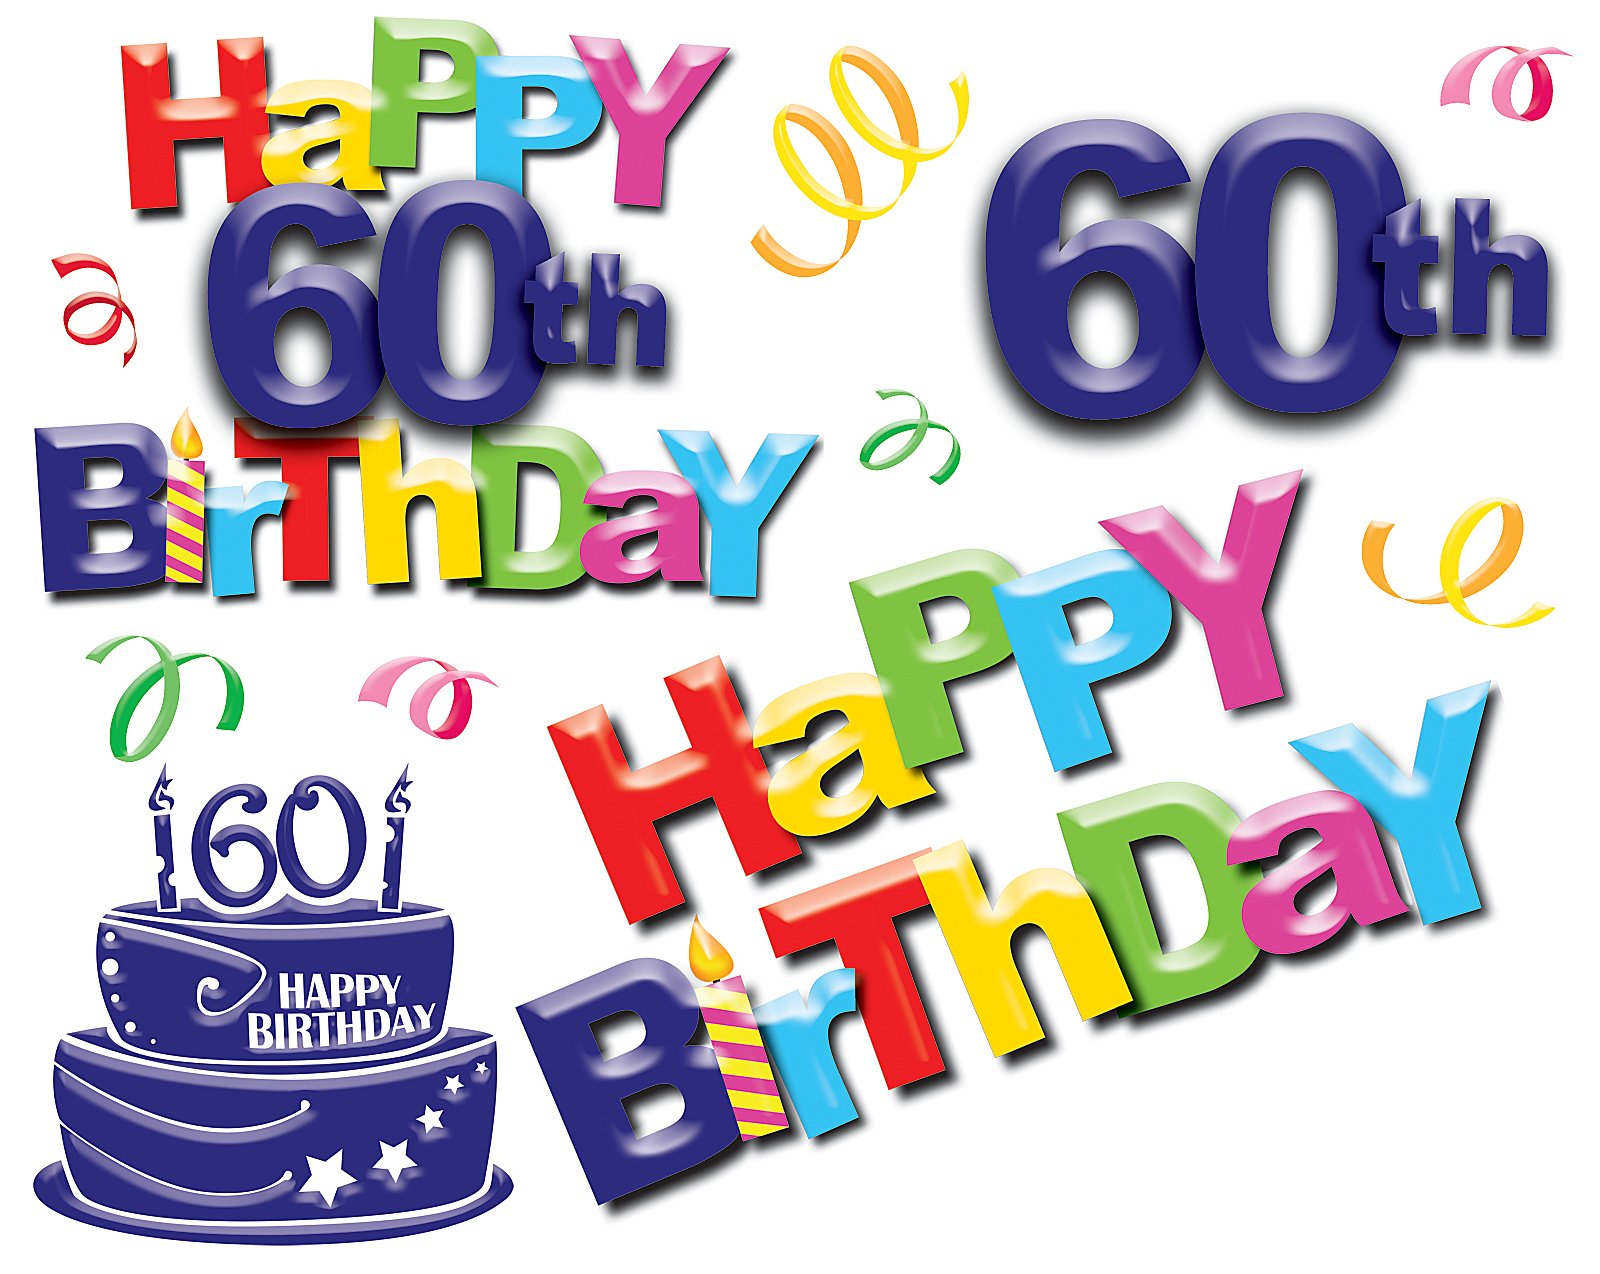 Happy 60th Birthday Image Pic Hd Wallpaper 1600x1274